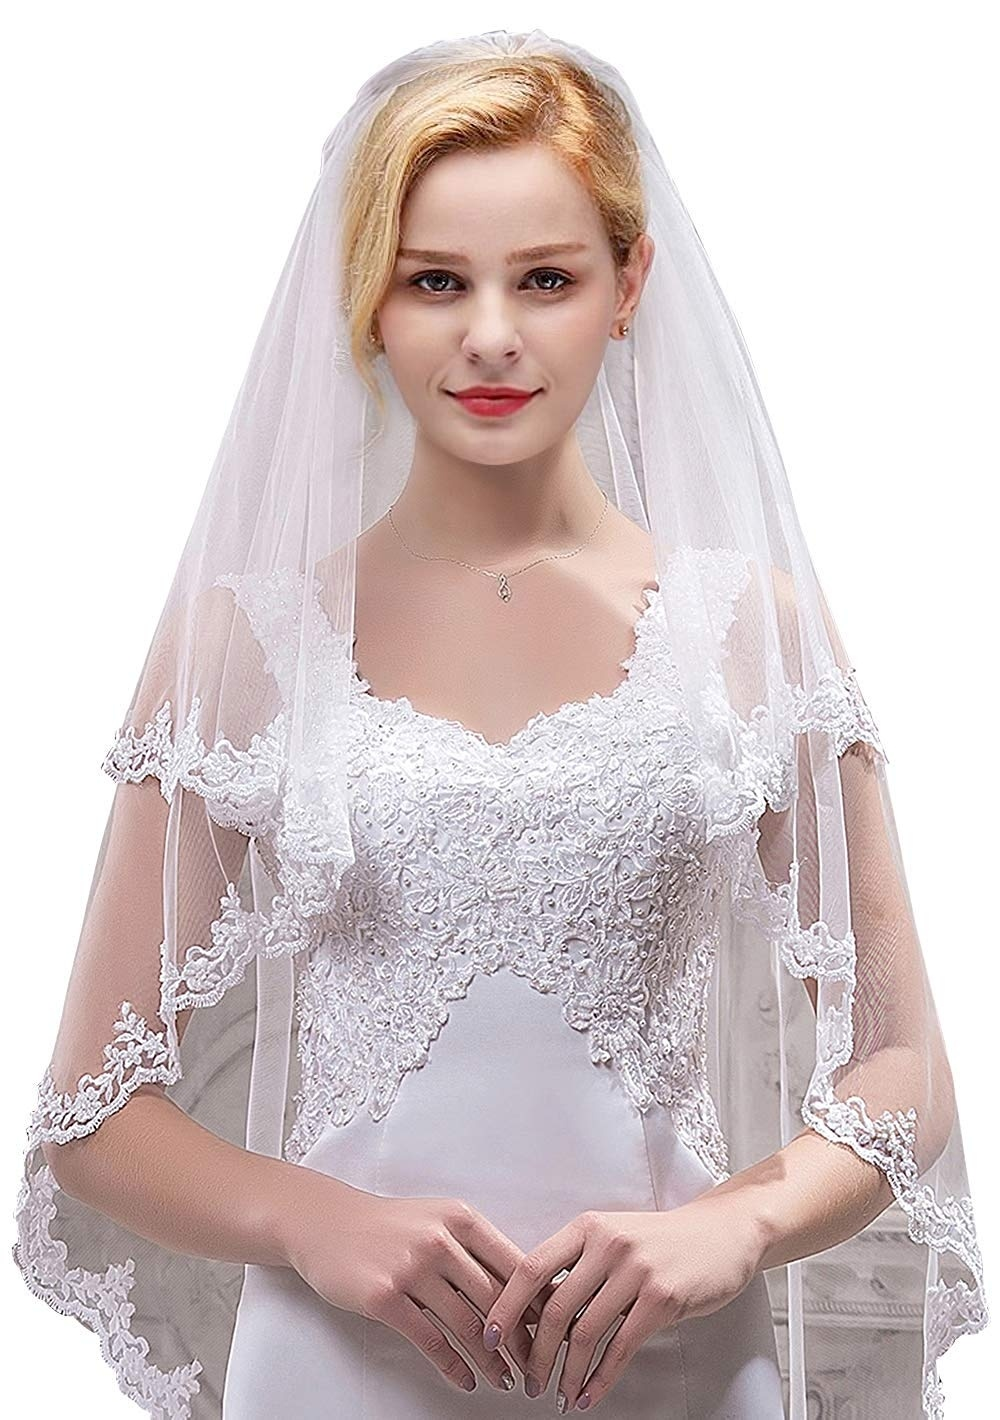 Women's Short 2 Tier Tulle Sheer Lace Wedding Bridal Veil With Comb Velos De Novia 2019  Vail  Ivory Veil Two Layer